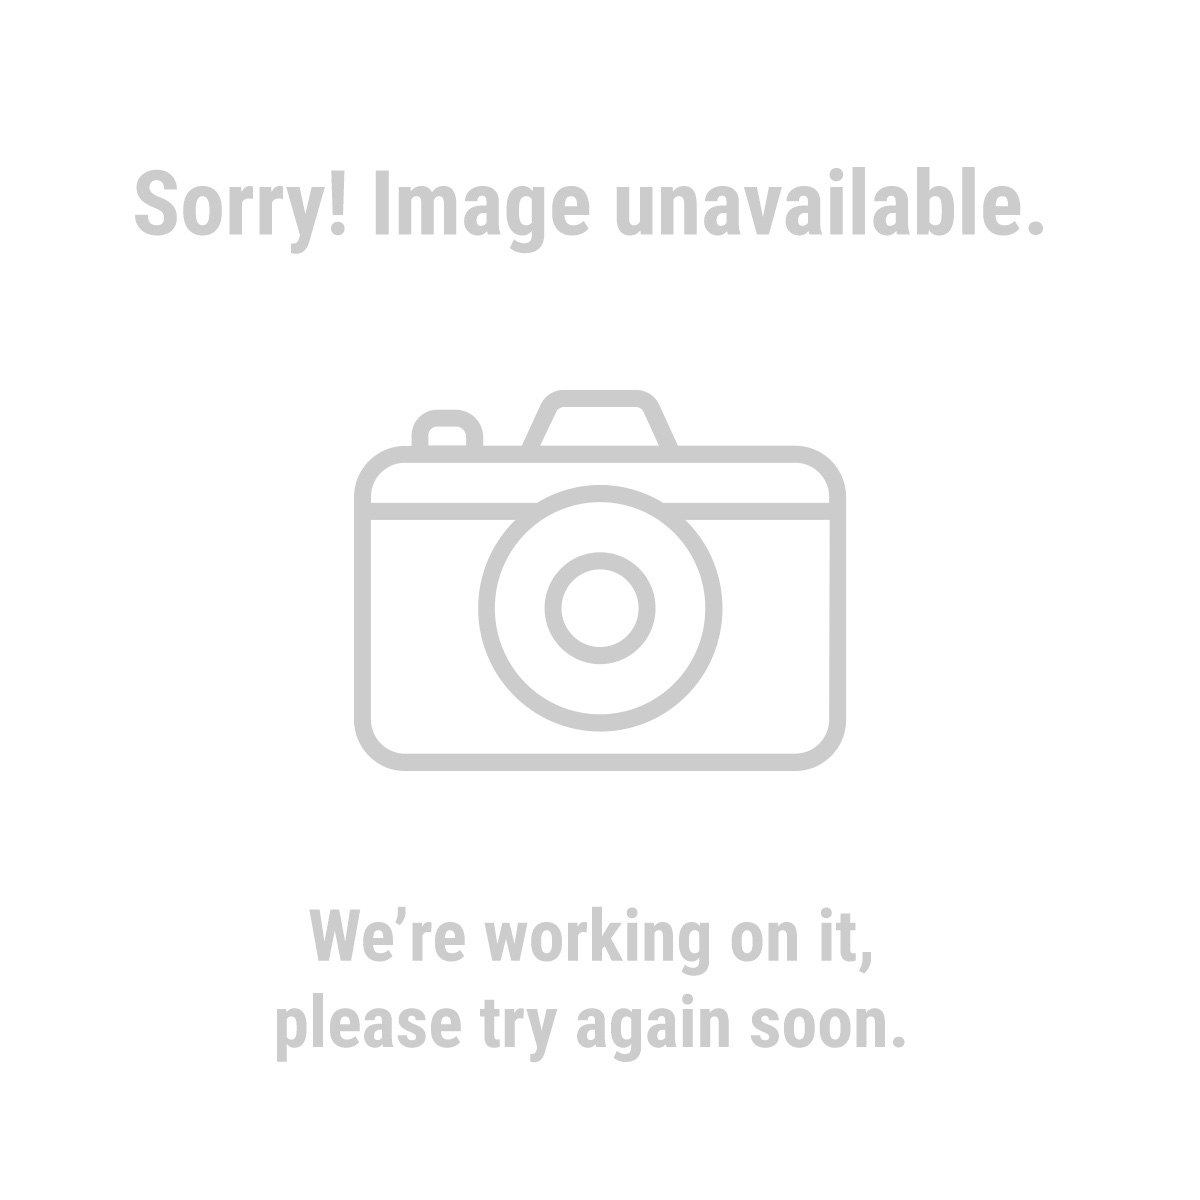 Pittsburgh® 94680 13 Piece SAE Ball End Hex Key Set